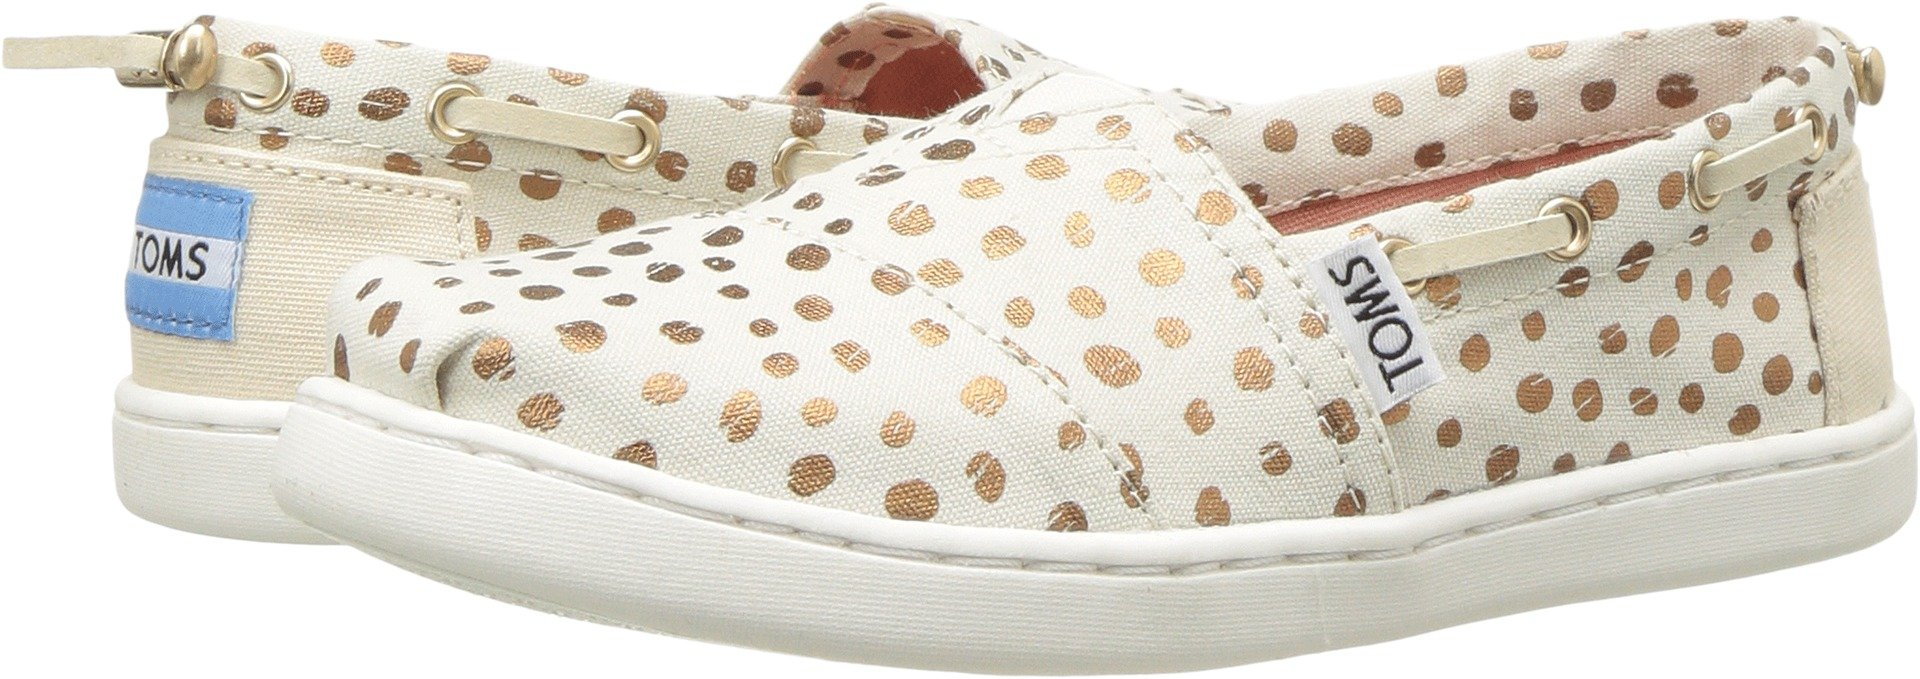 TOMS Youth Bimini Canvas Printed Espadrille, Size: 3.5 M US Big Kid, Color Rose Gold Dots